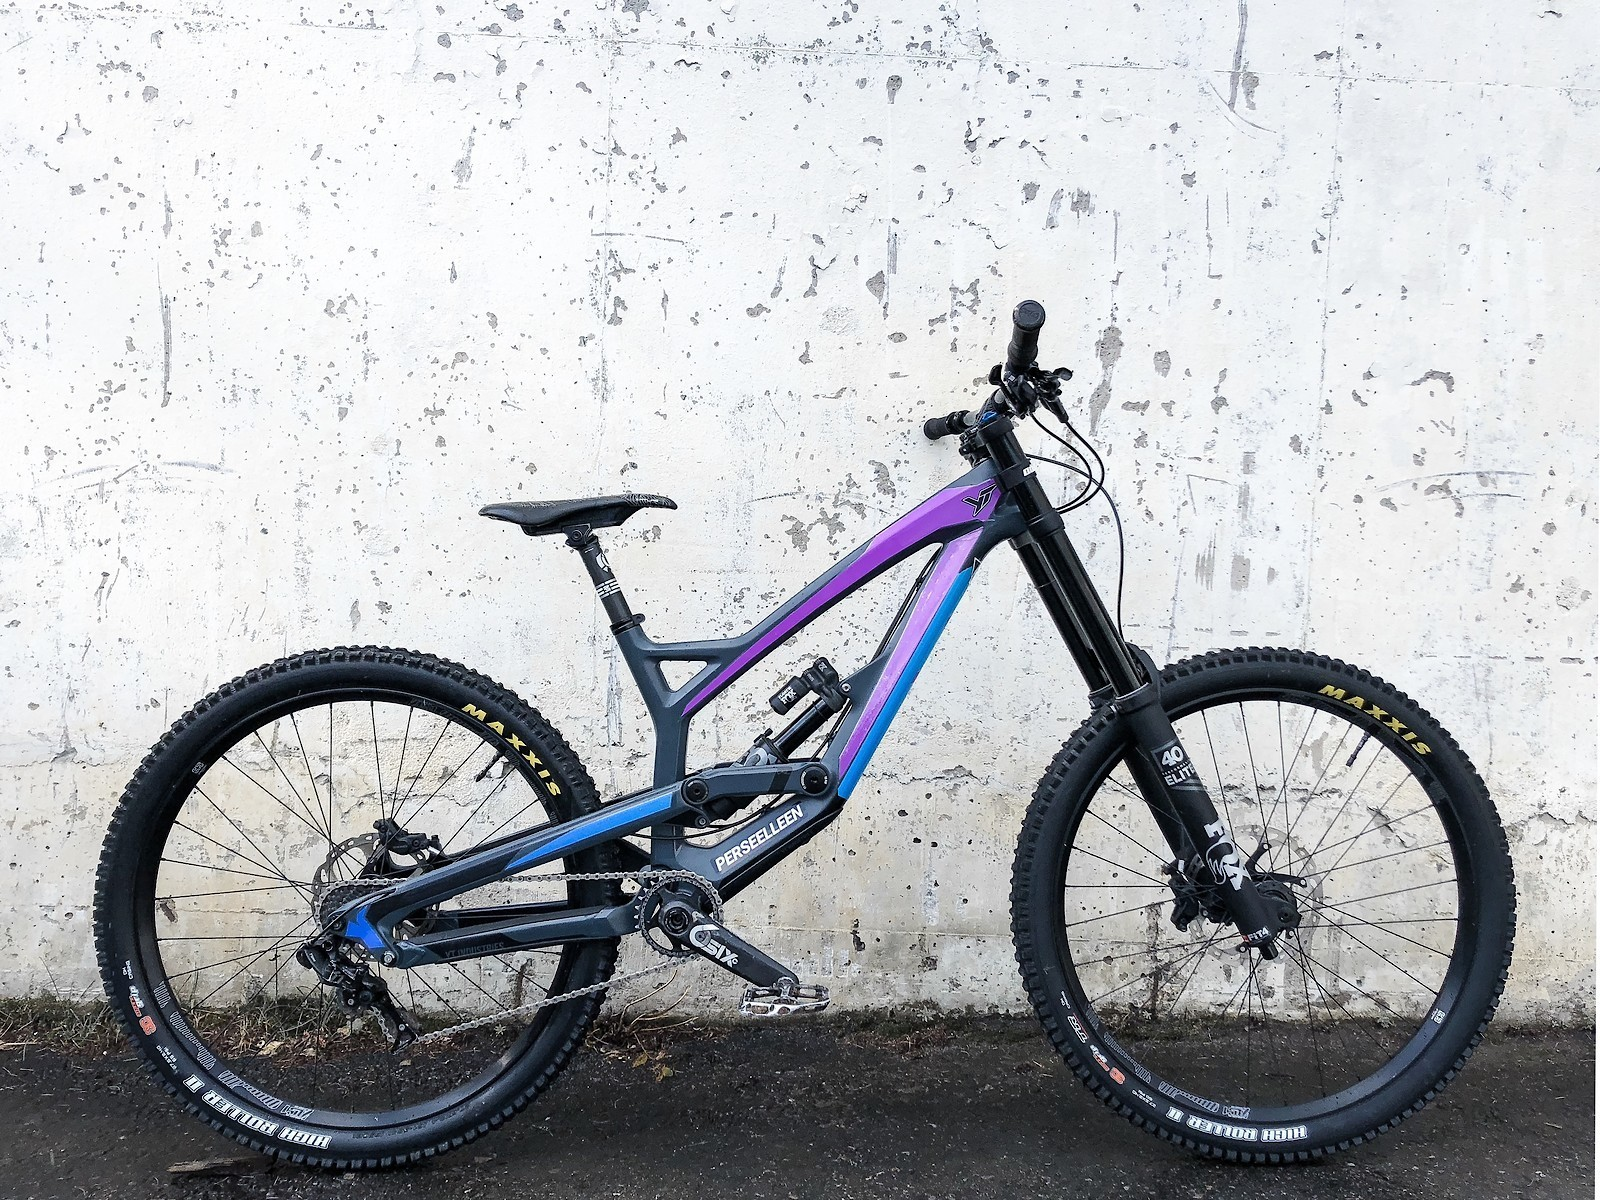 YT TUES Carbon DIY - 2019 Vital Bike of the Day Collection - Mountain Biking Pictures - Vital MTB